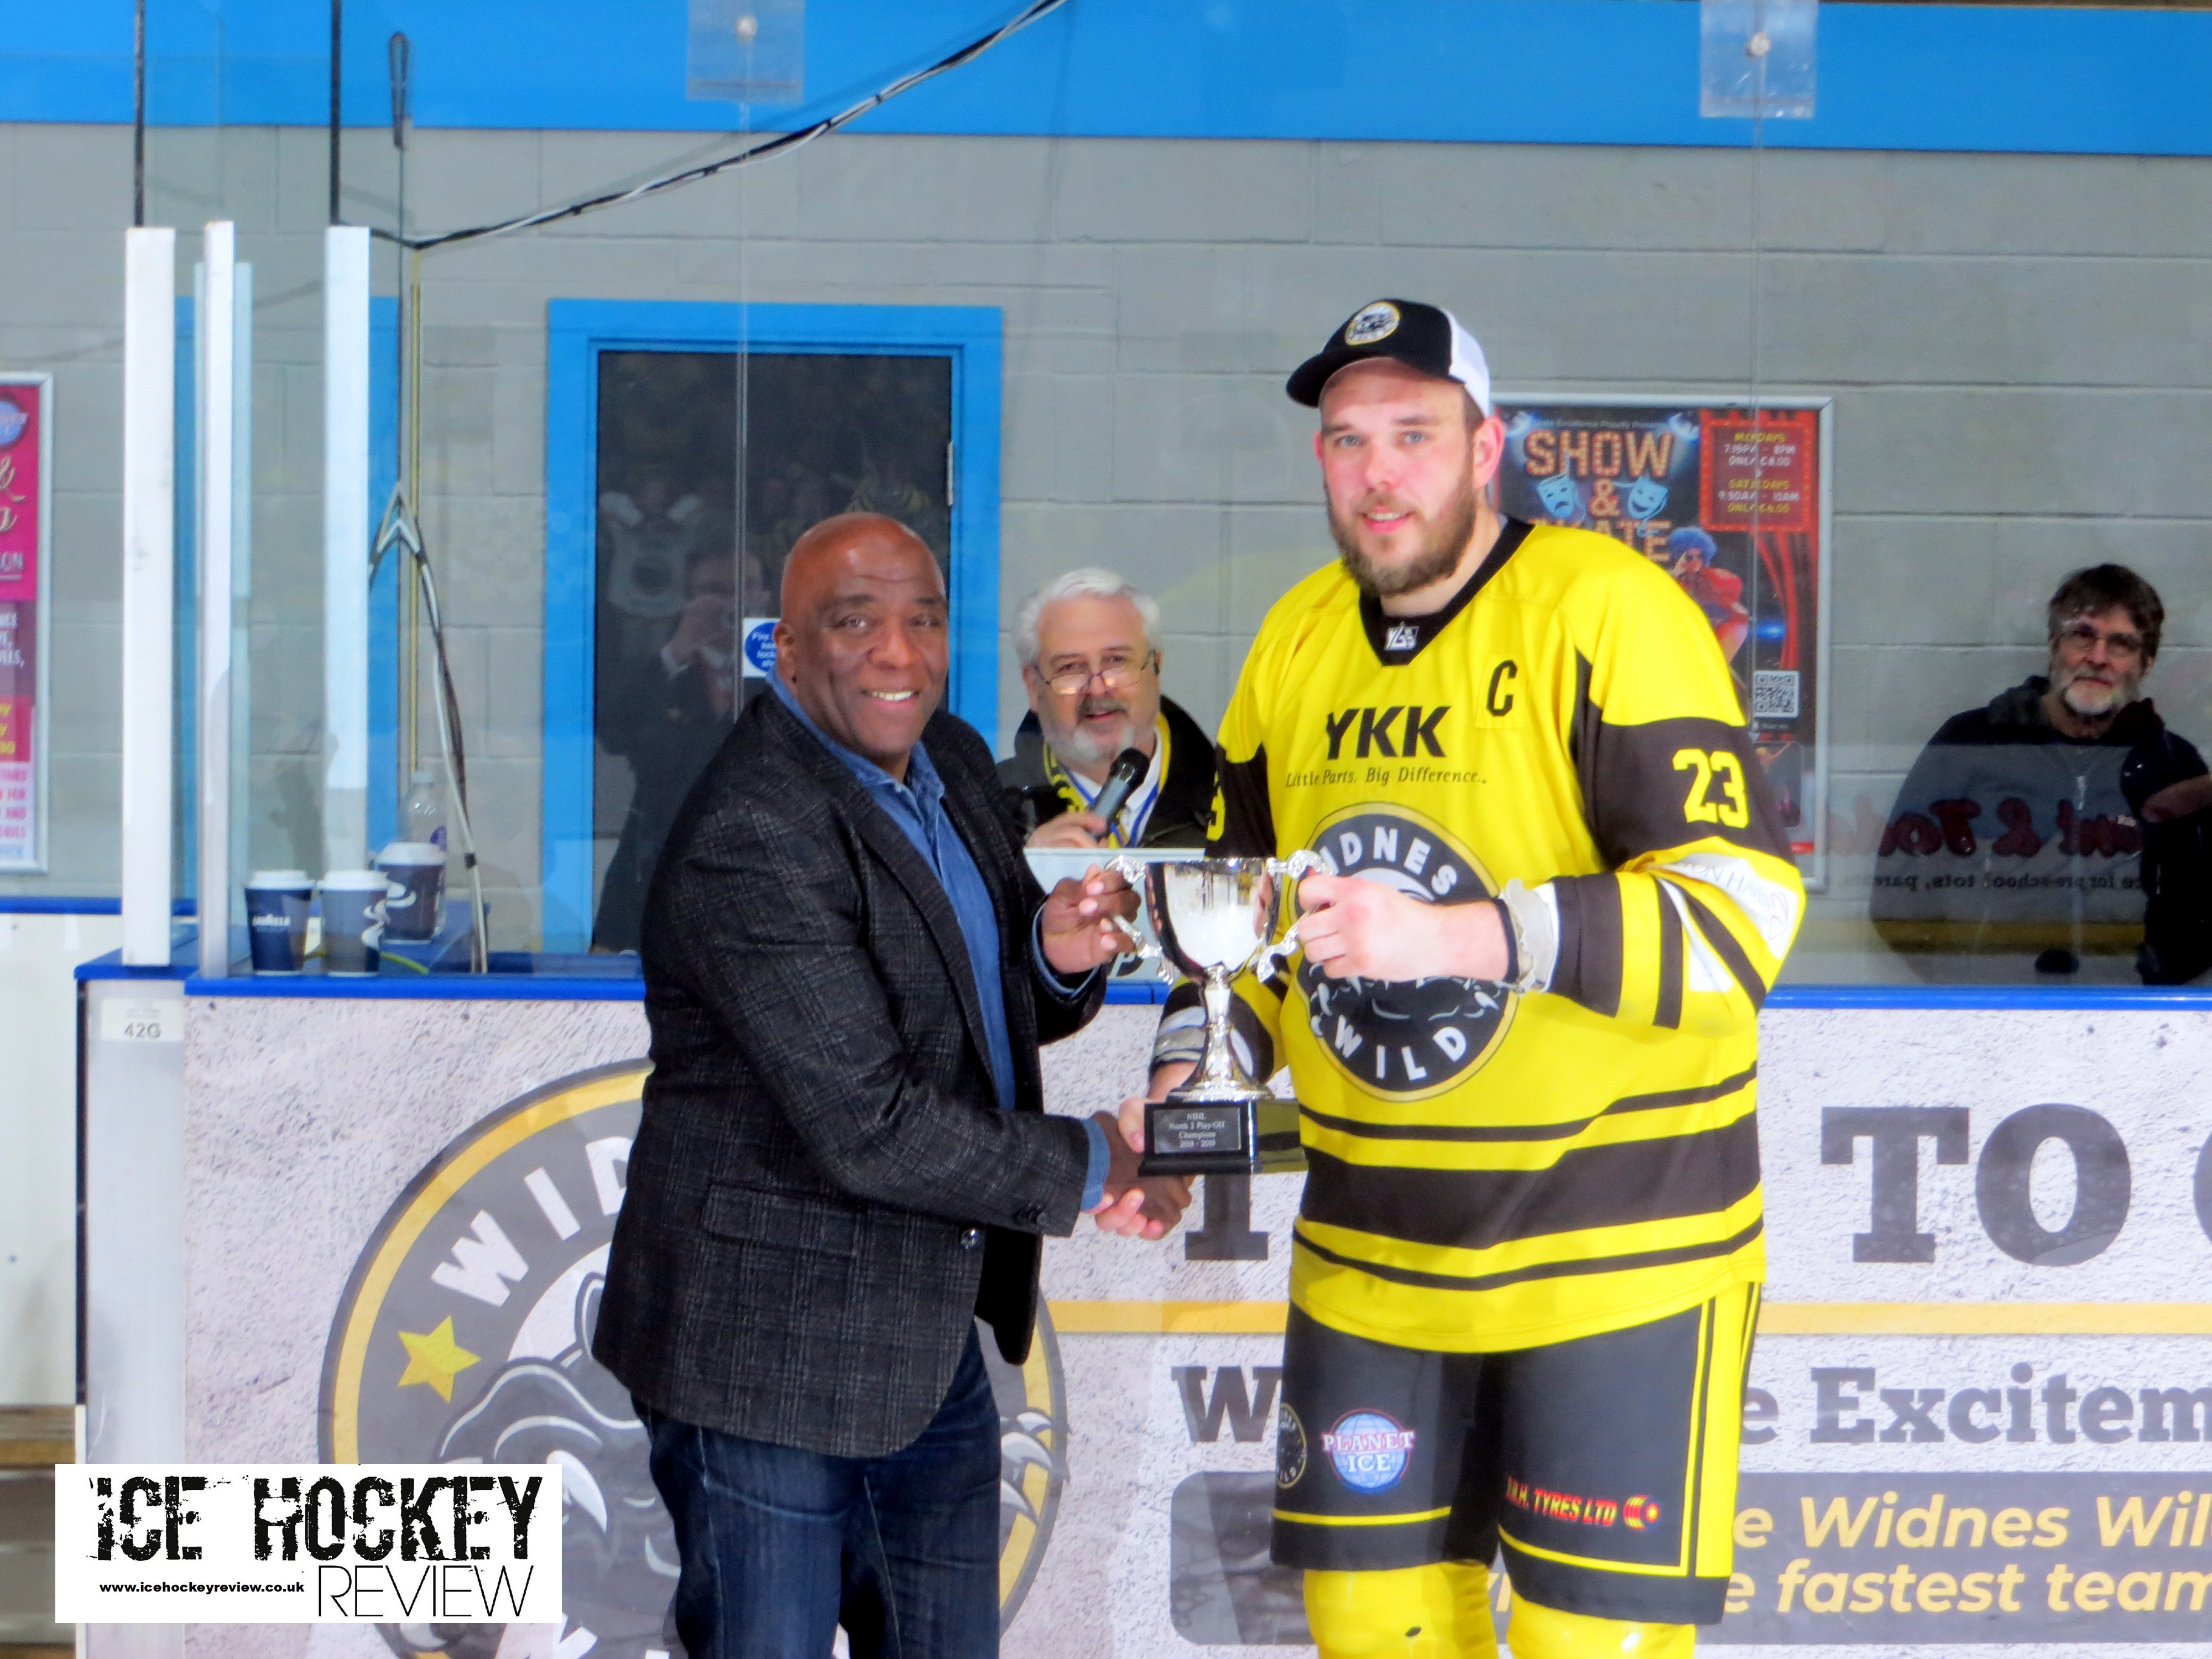 wild captain simon offord receives play off trophy with logo - YKK